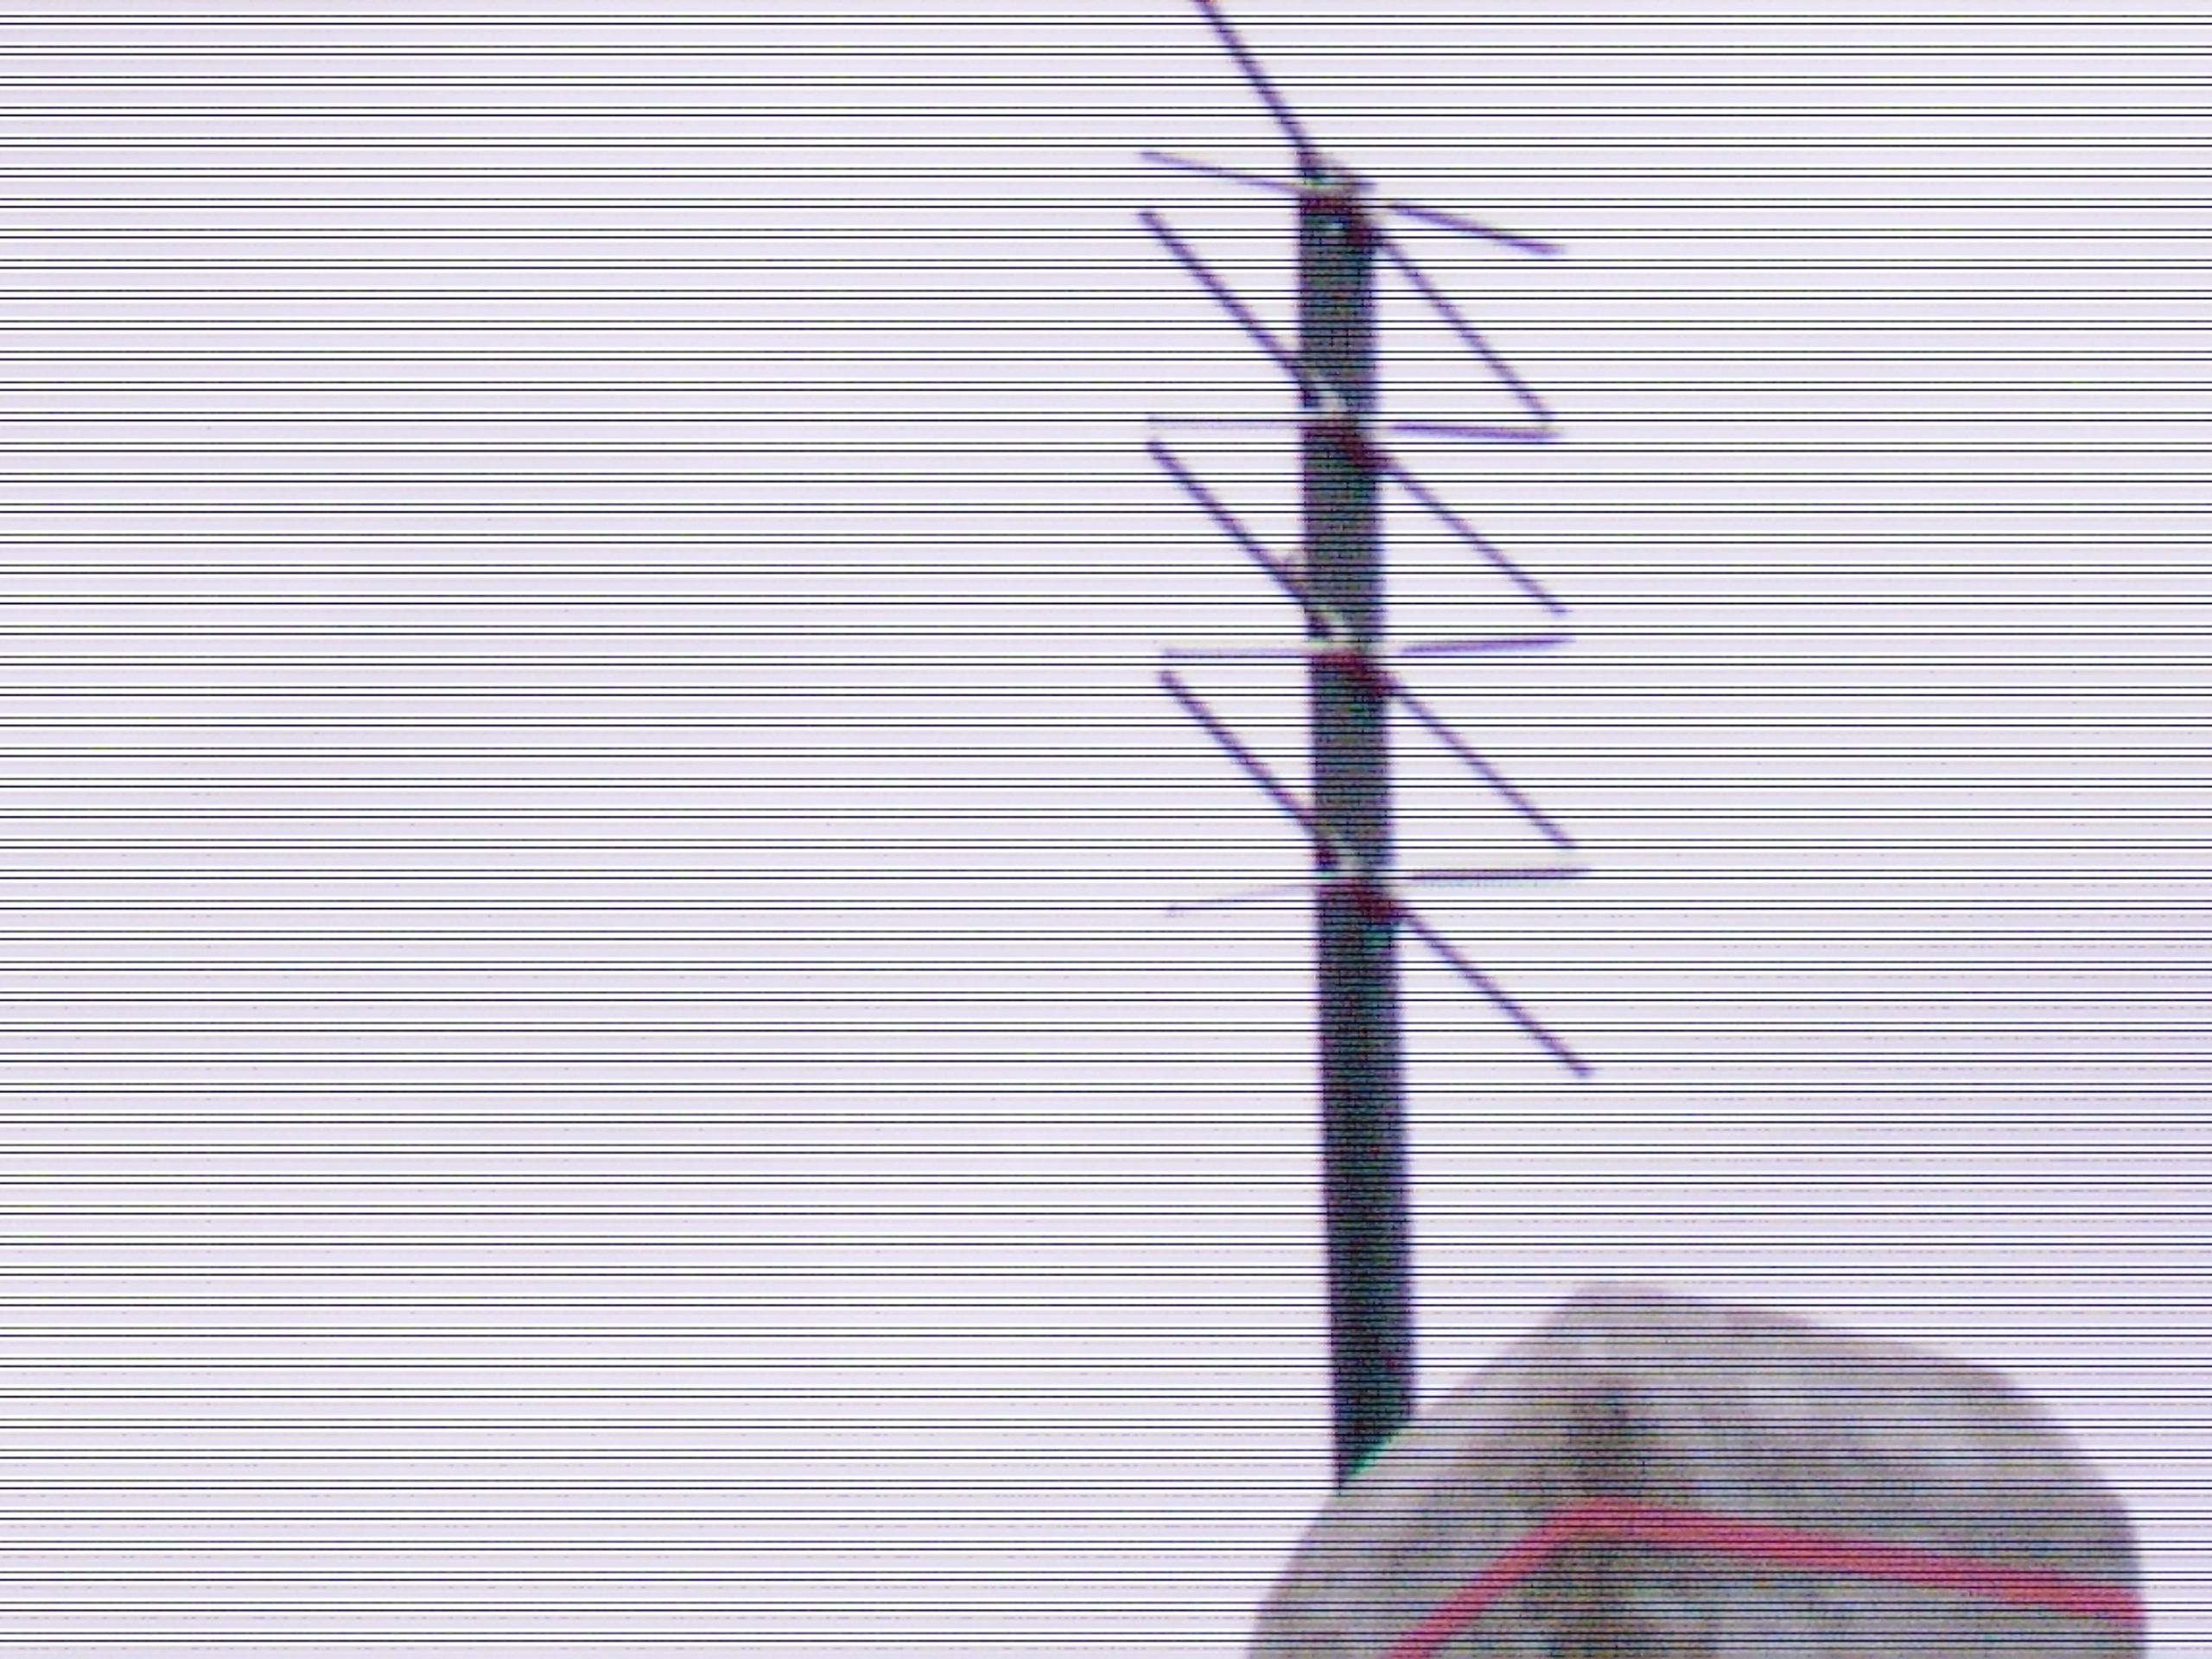 hdtv antenna template - build your own digital tv antenna for when the cable is